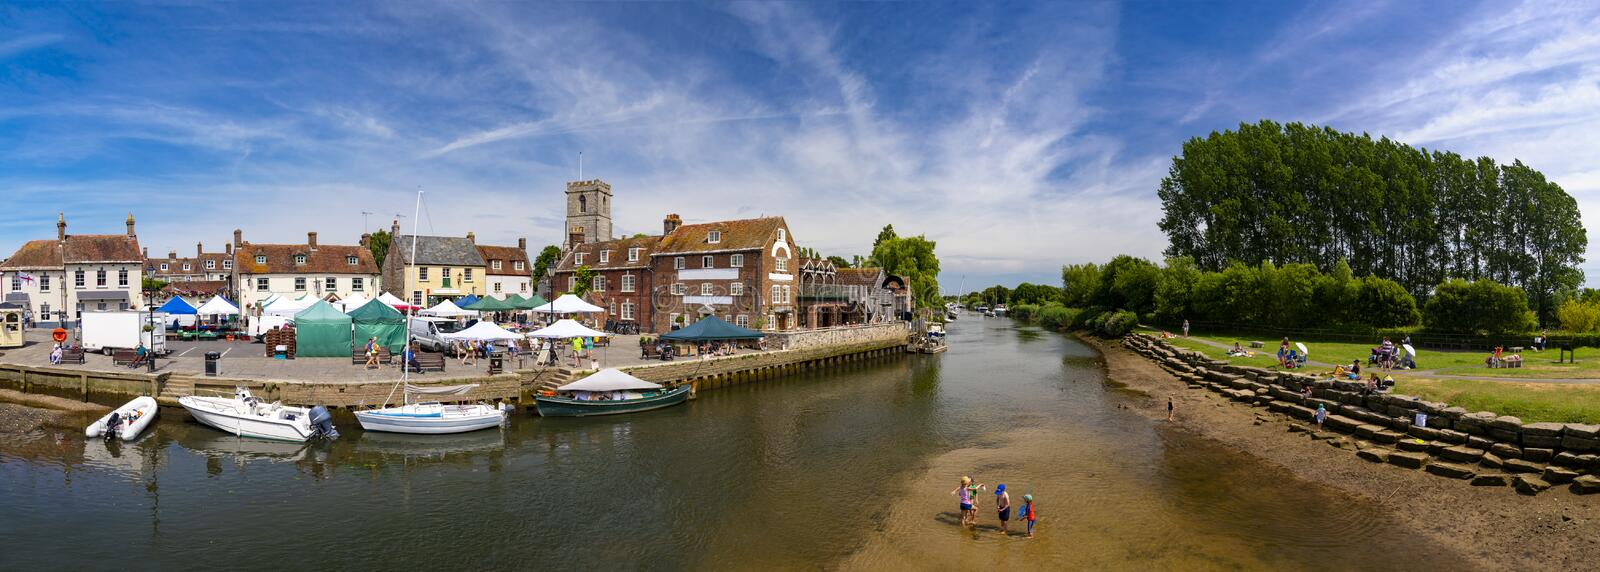 Children play in the river Frome at Wareham. Low tide at Wareham Quay with children playing in the water royalty free stock photos